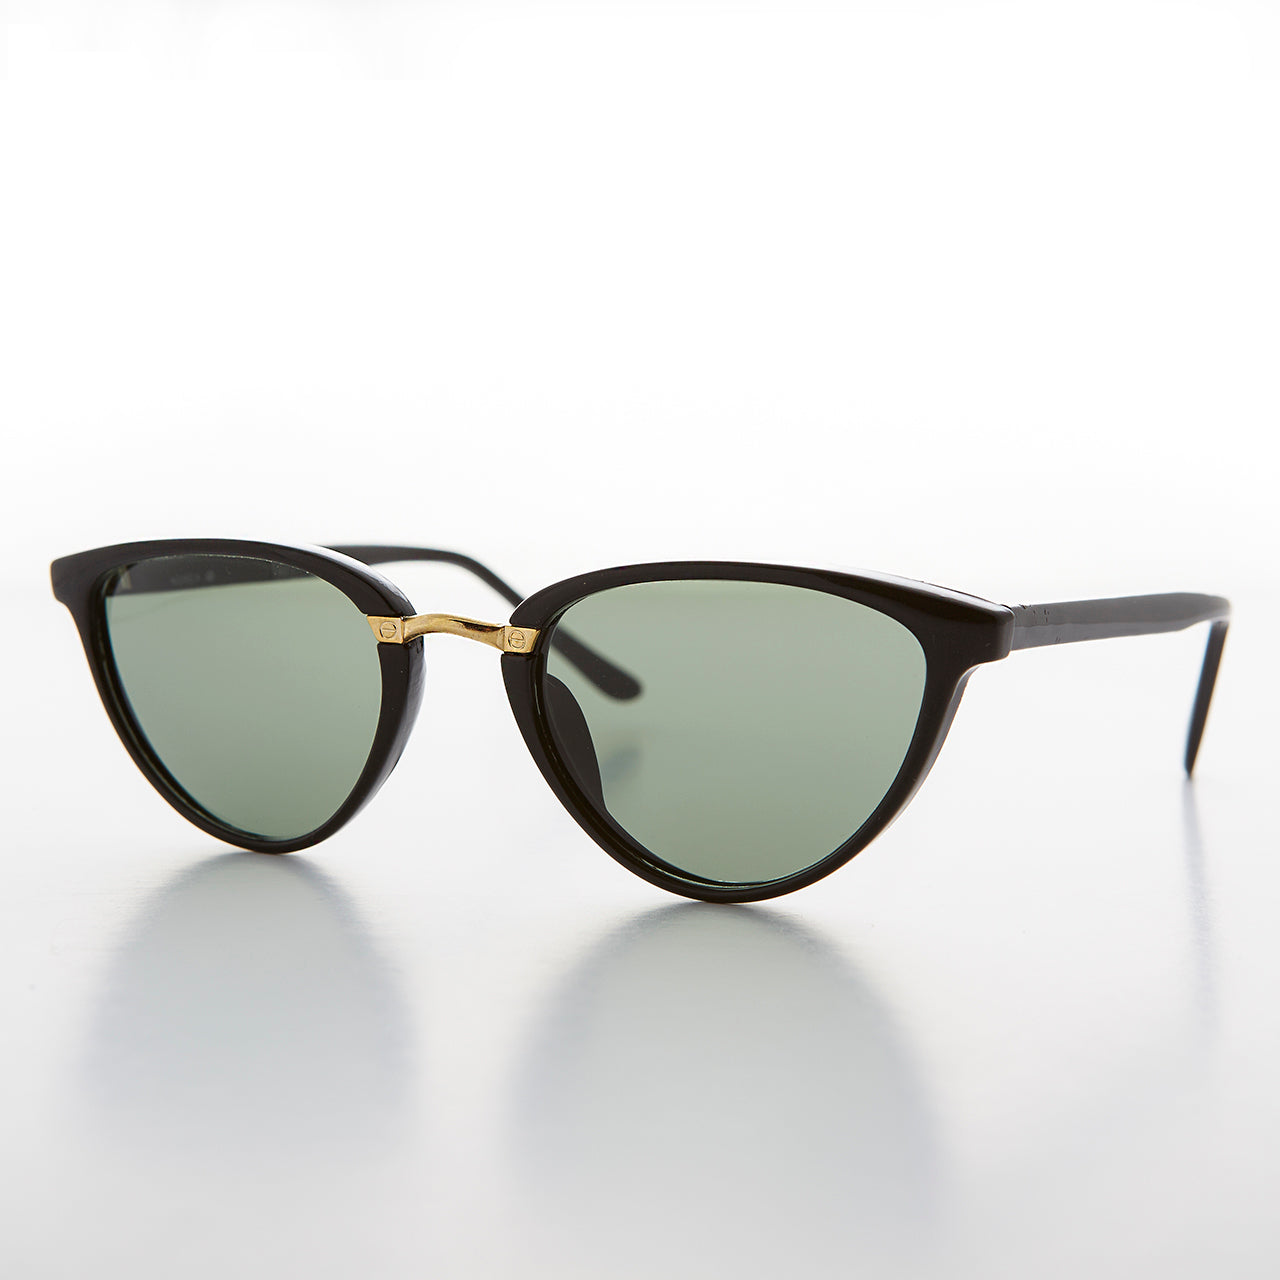 Elegant Women's Cat Eye Vintage Sunglass